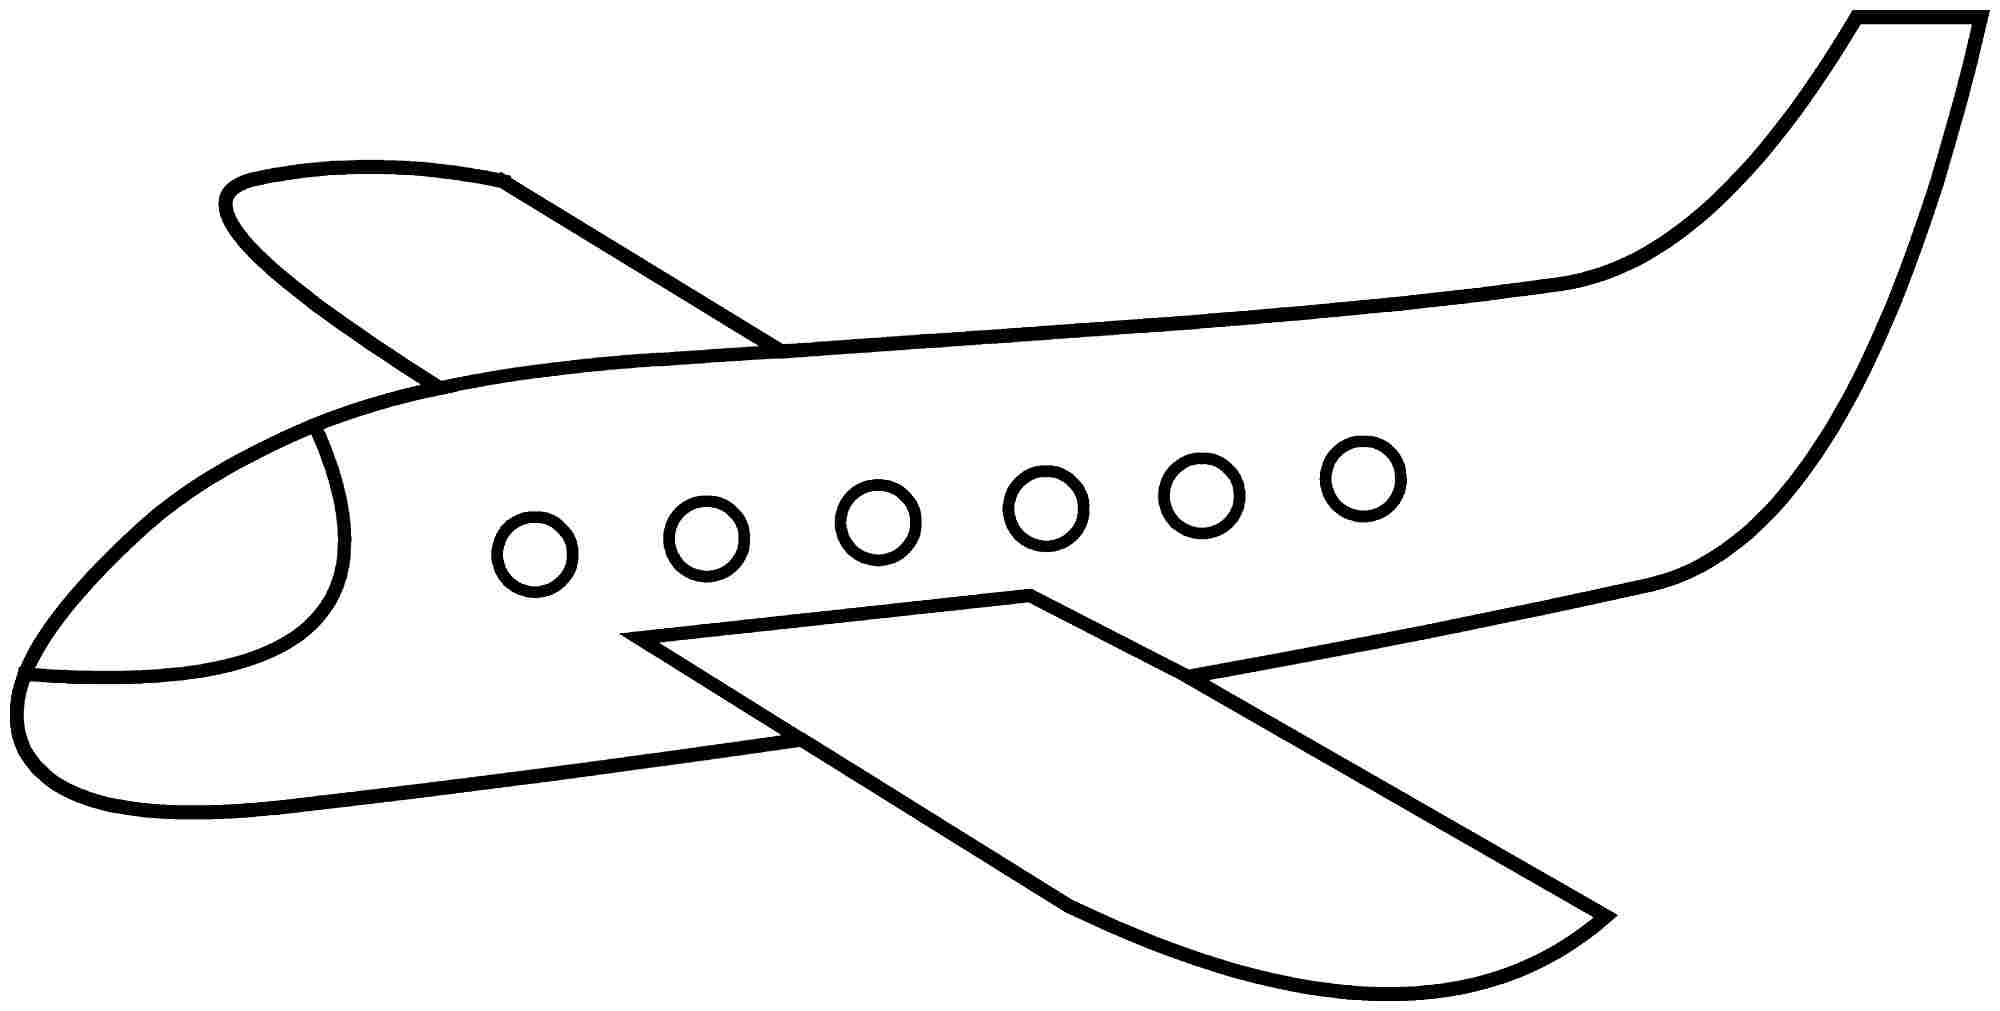 coloring page airplane ww2 airplane coloring pages at getdrawings free download page coloring airplane